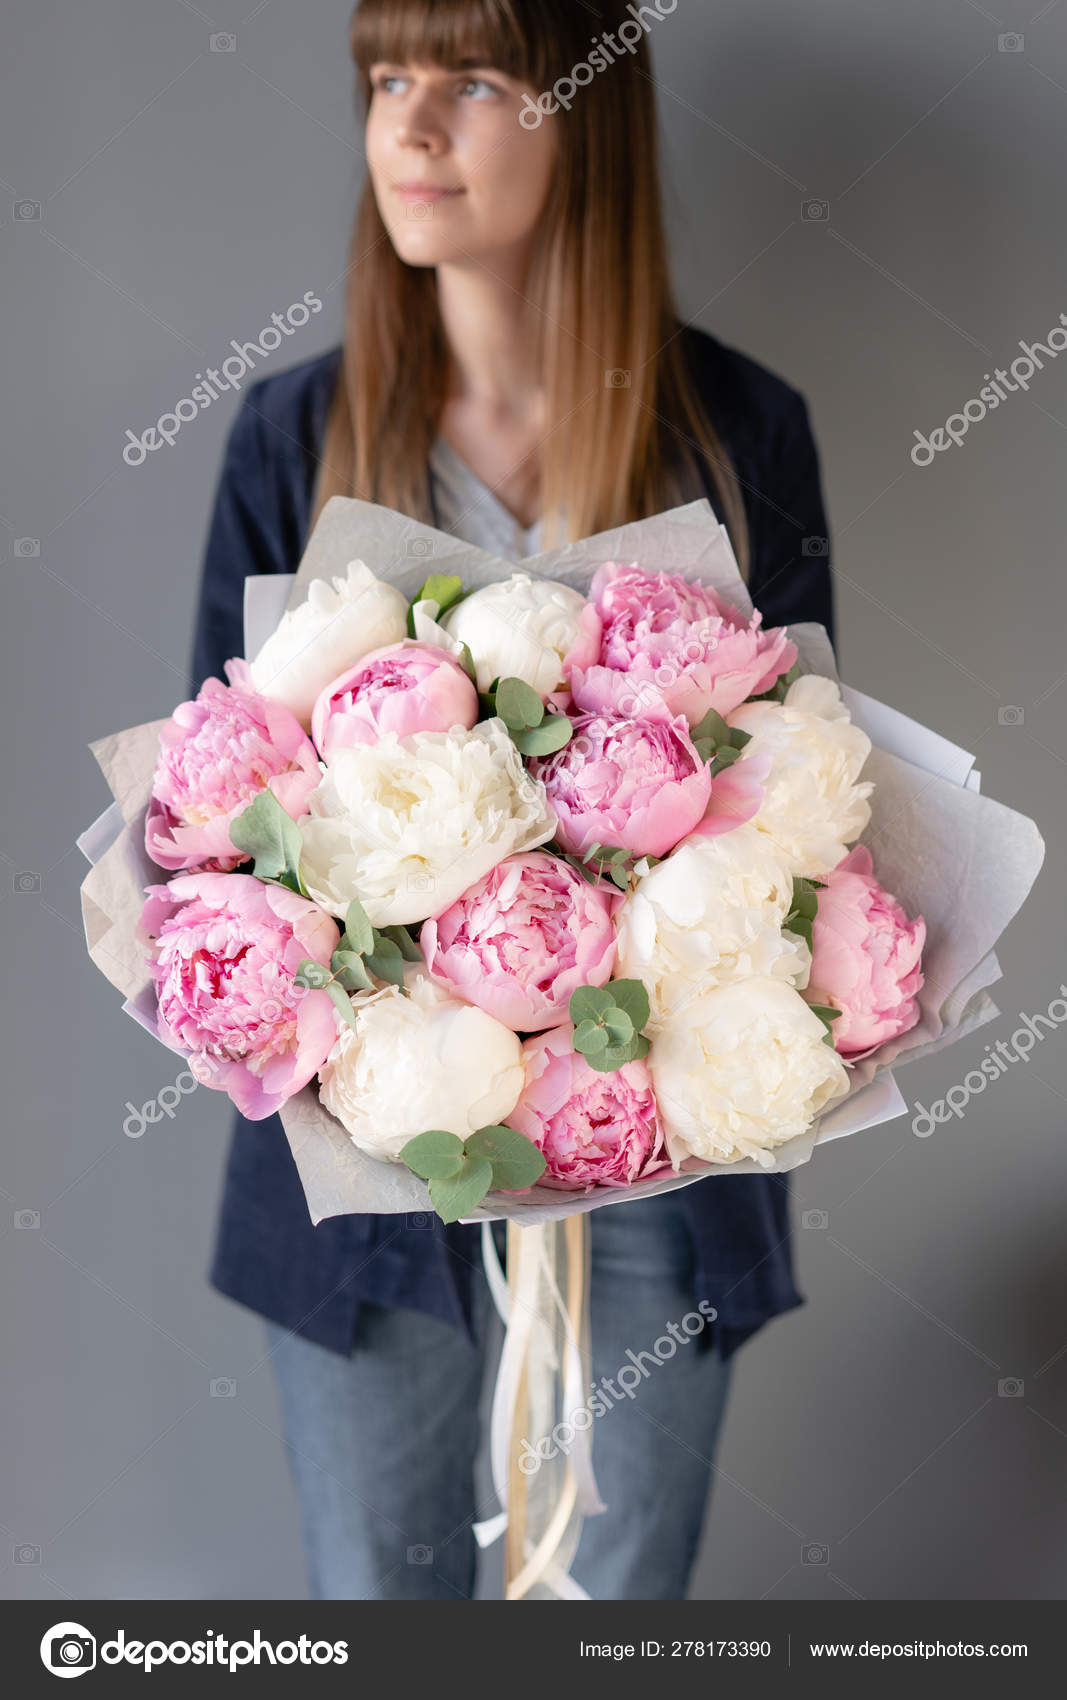 Pink And White Peonies In Womans Hands Beautiful Peony Flower For Catalog Or Online Store Floral Shop Concept Beautiful Fresh Cut Bouquet Flowers Delivery Stock Photo C Malkovkosta 278173390